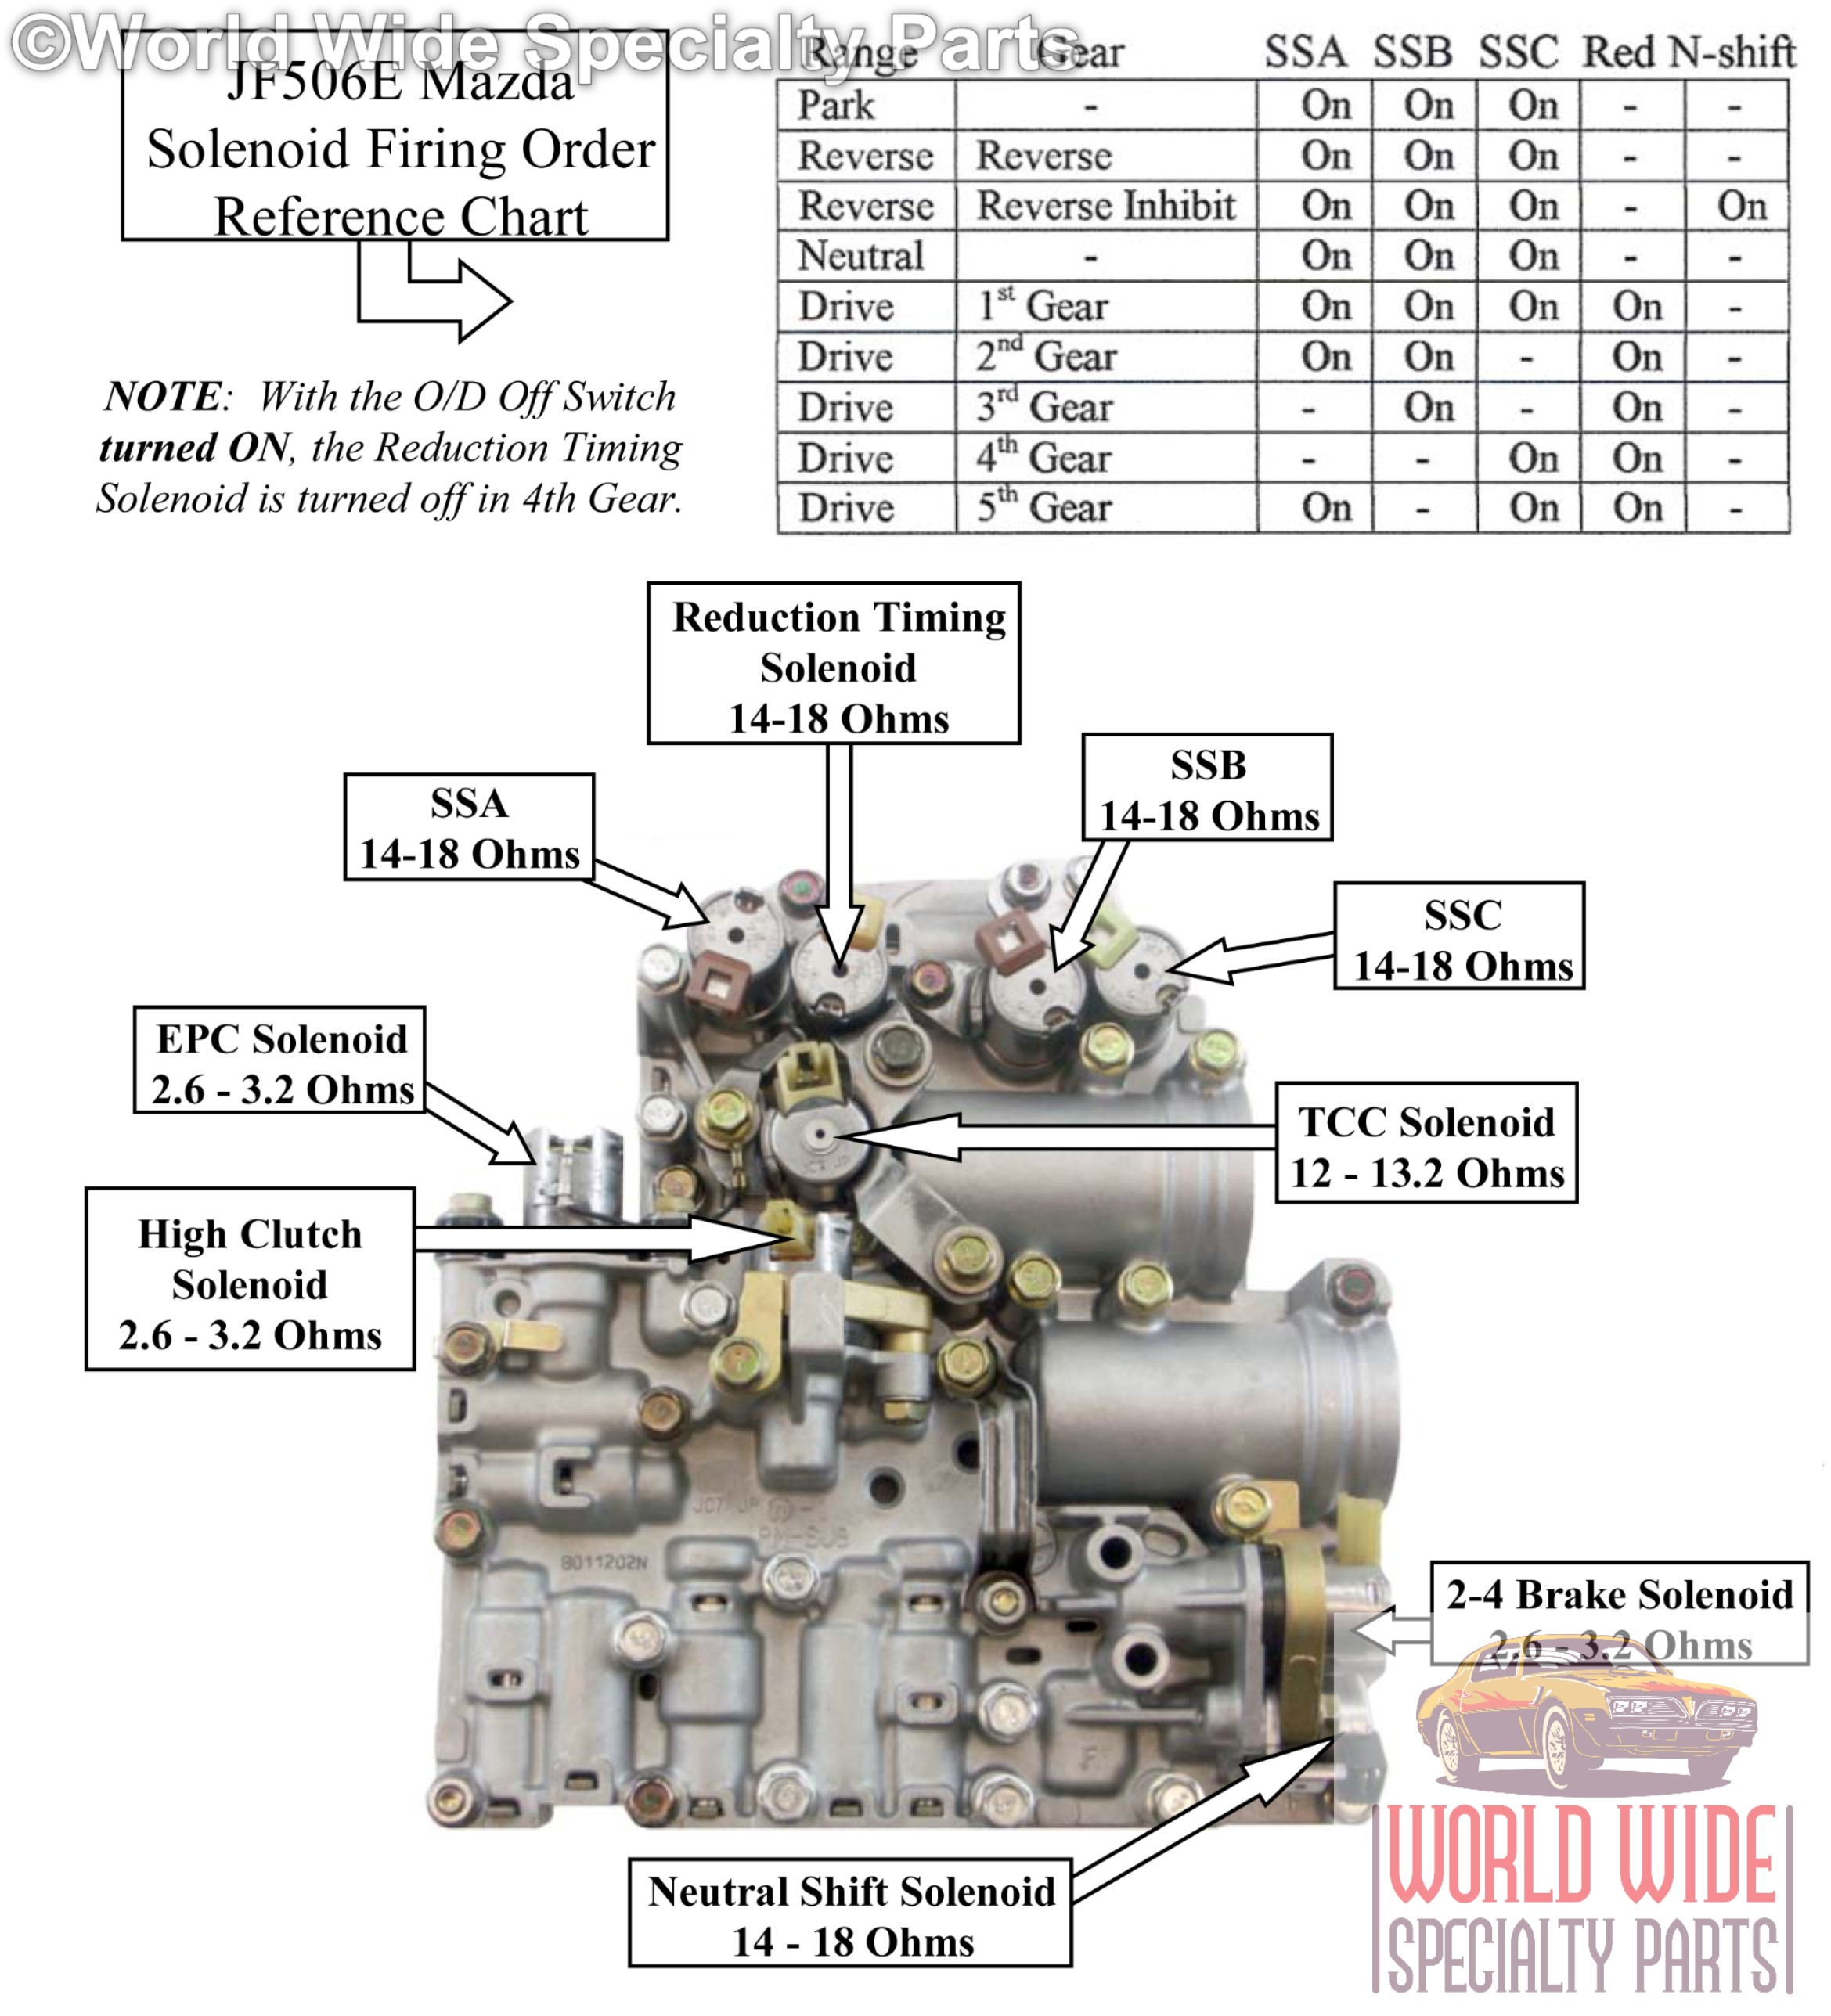 In the photo above you can see the identities and locations of the JF506E  Solenoids, as well as a Firing Order Reference Chart.